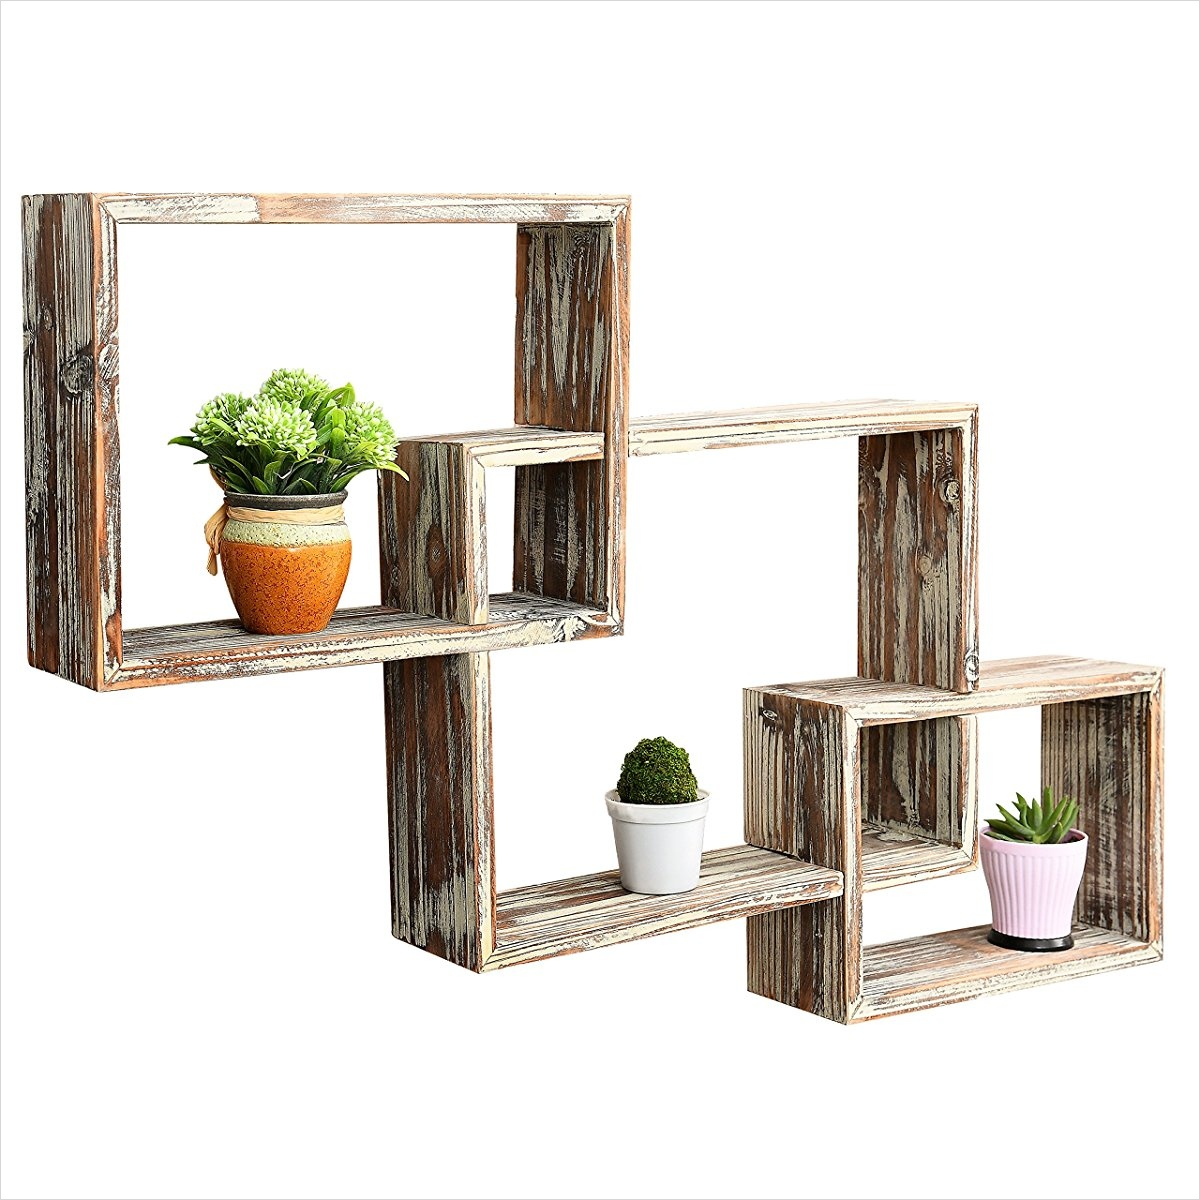 45 Creative Rustic Wall Mounted Bookshelves 42 Country Rustic 3 Tier Floating Box Shelves Decorative Wood Wall Mounted Display Shelf Brown 1